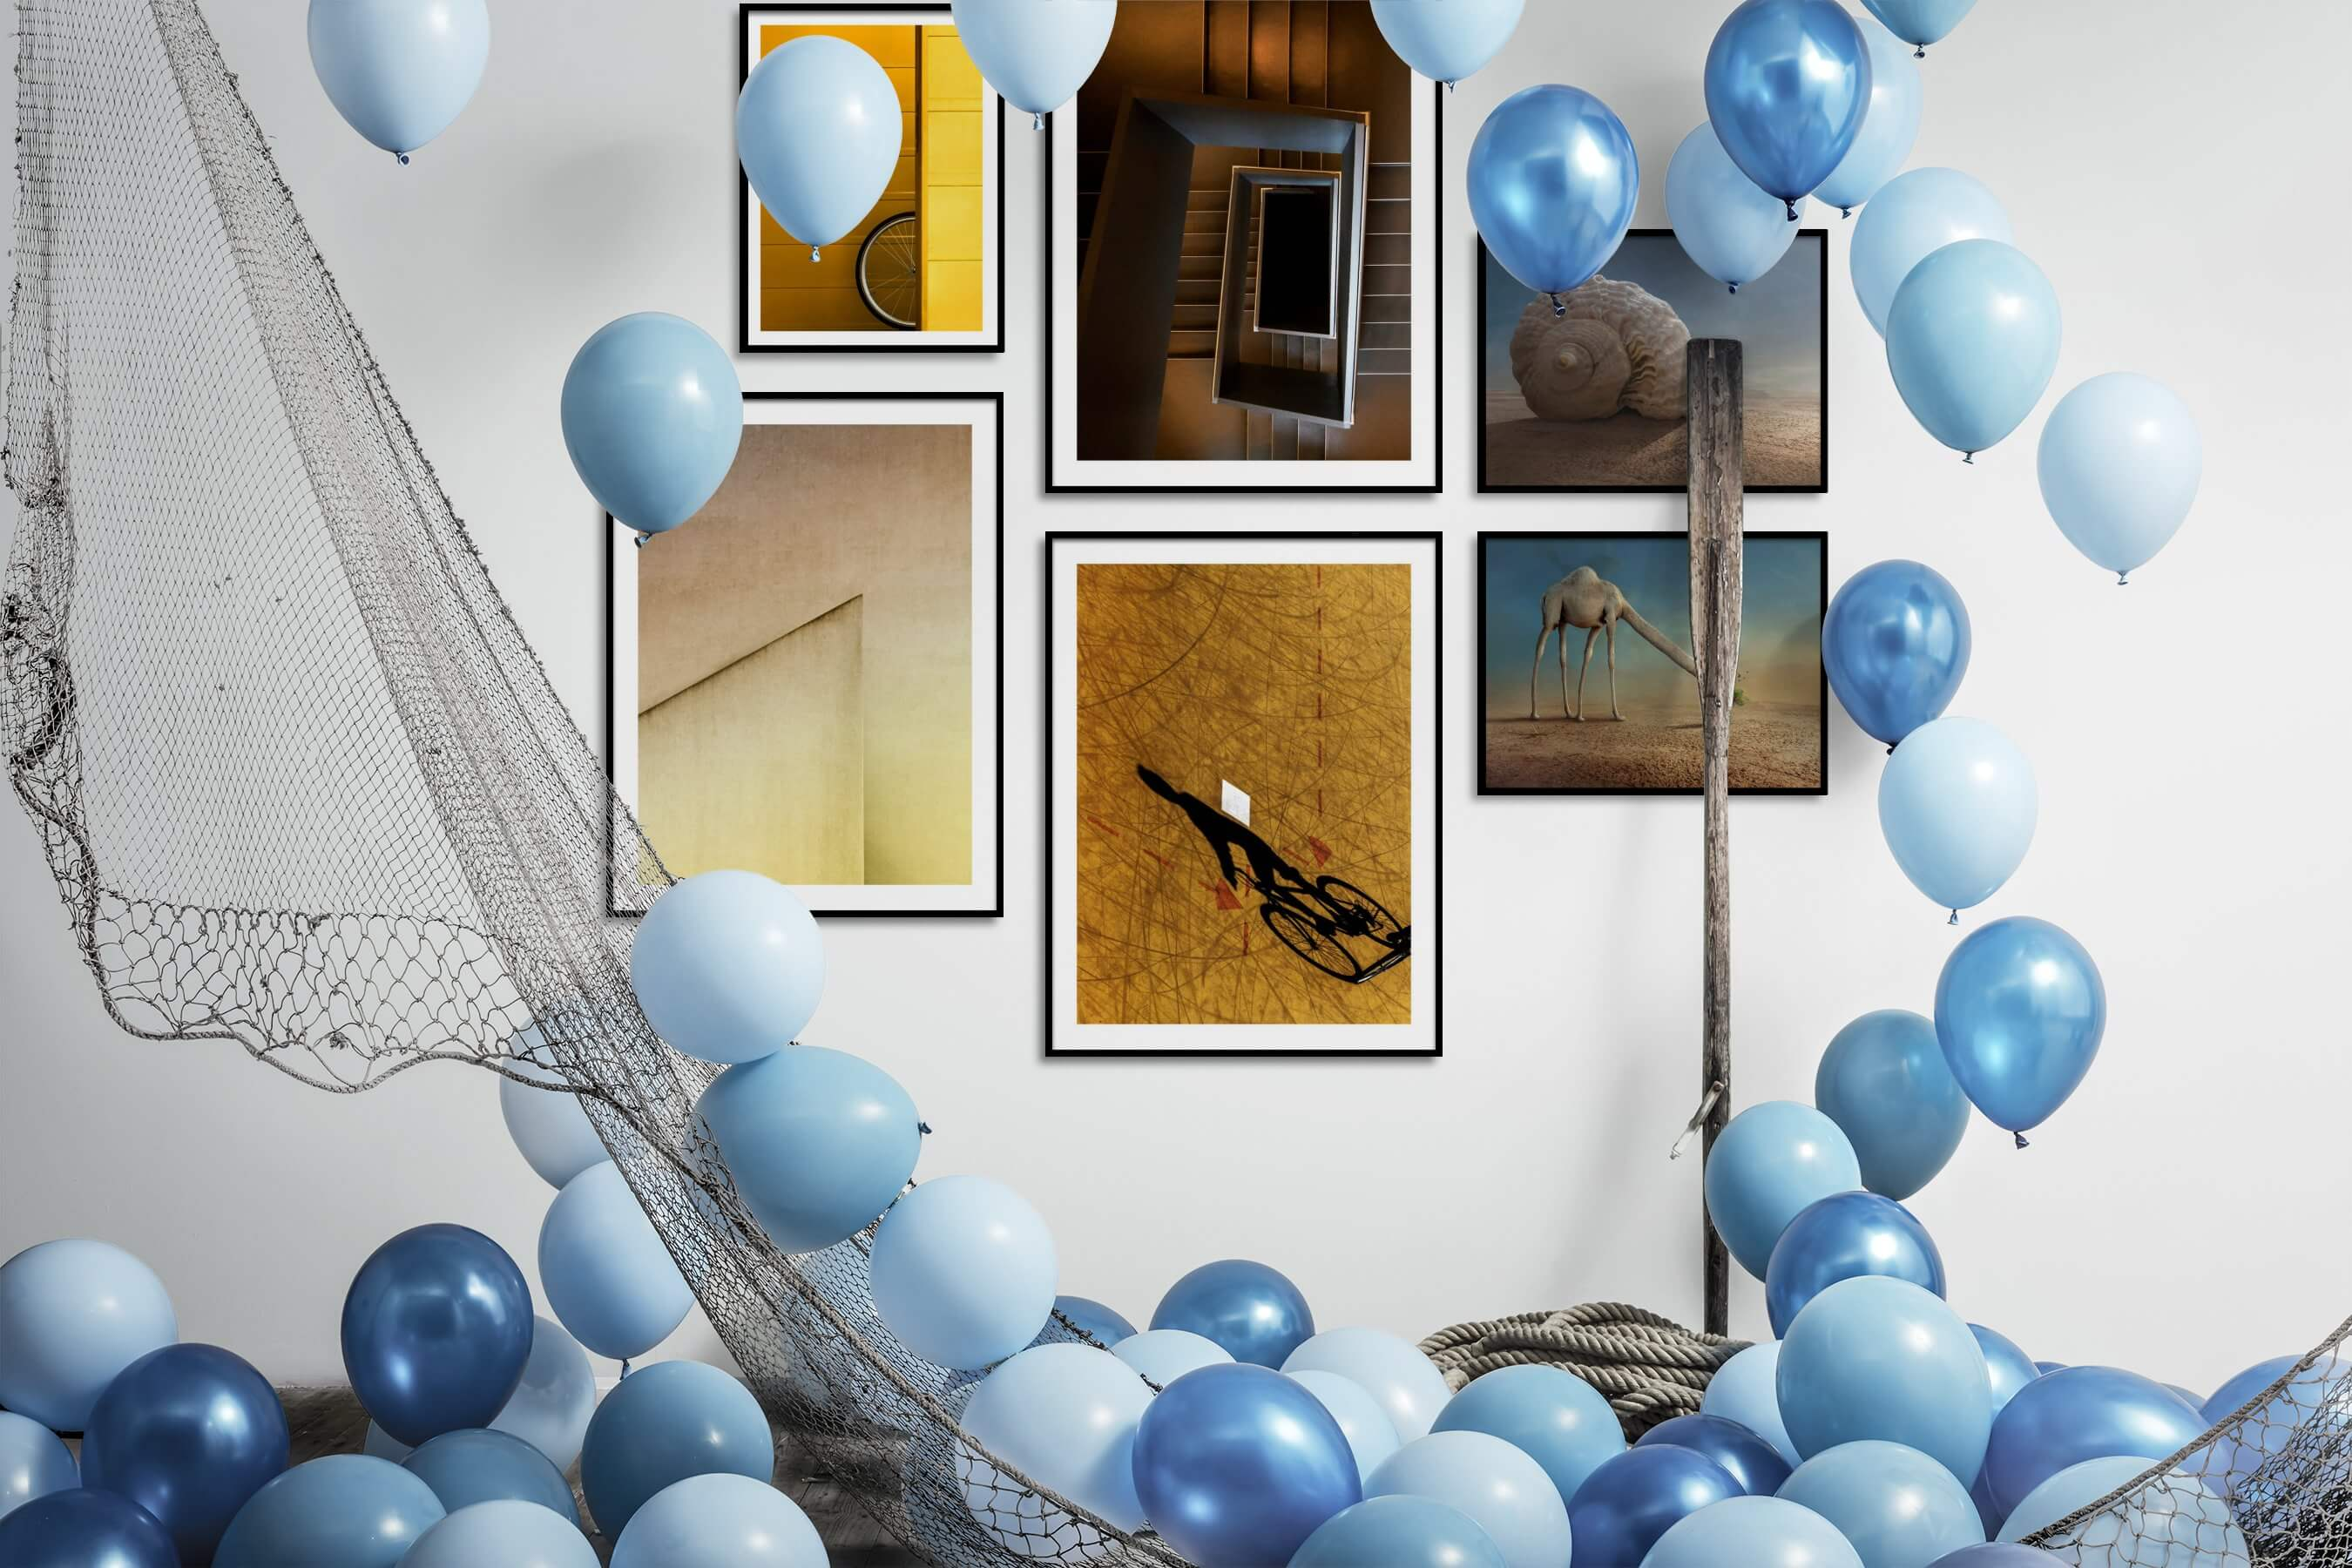 Gallery wall idea with six framed pictures arranged on a wall depicting For the Moderate, For the Minimalist, Artsy, Nature, and Animals